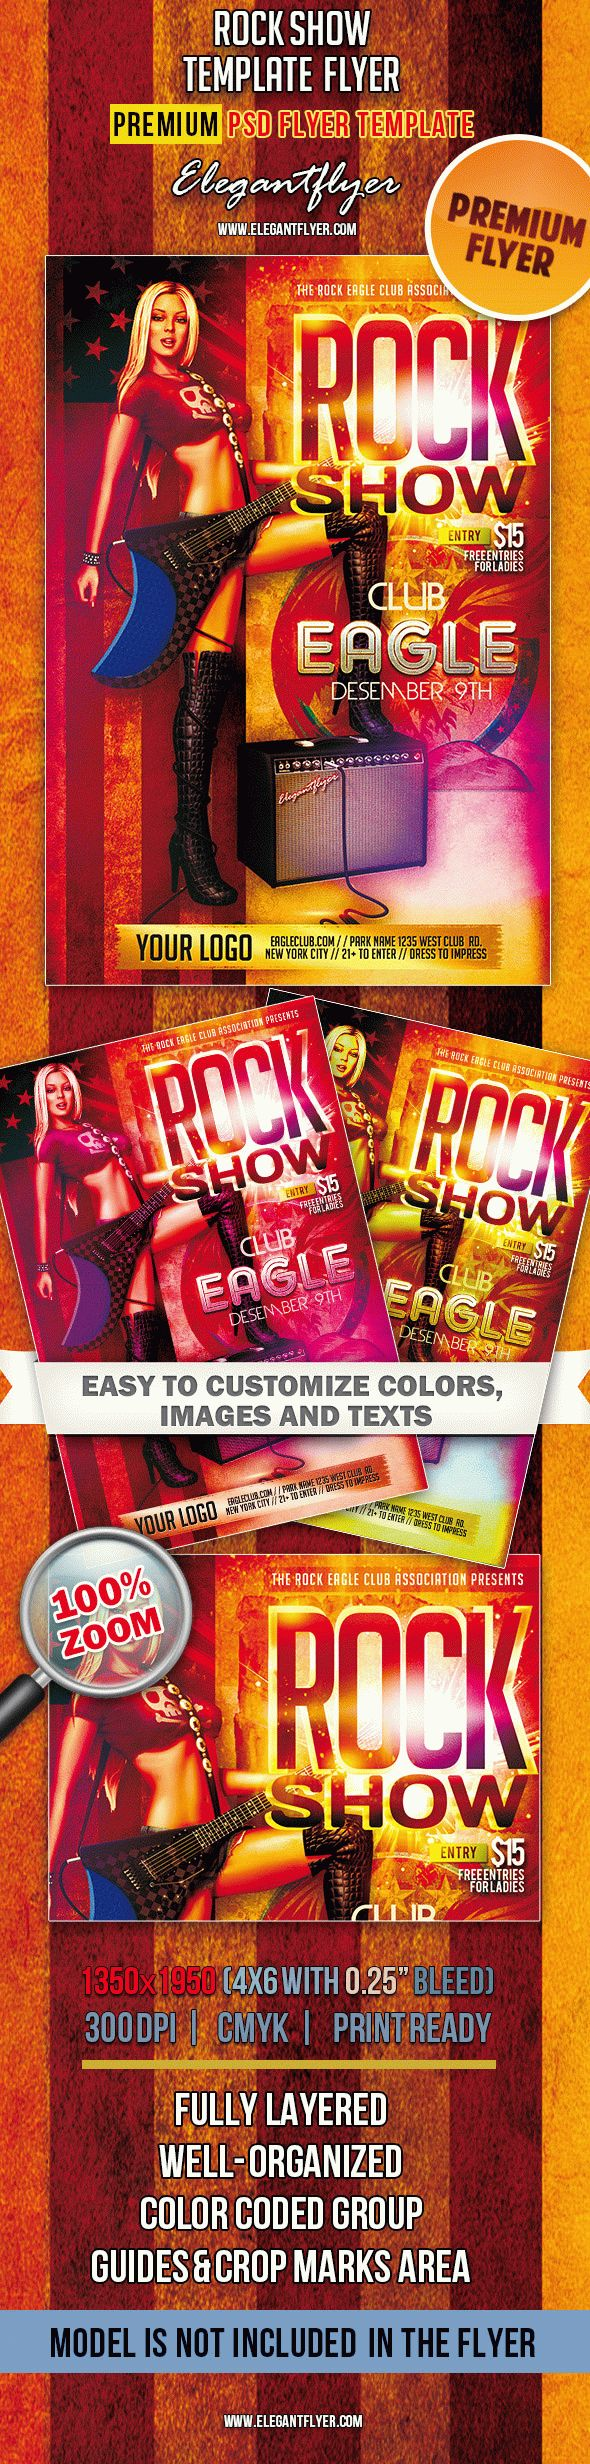 Rock Show – Premium Club flyer PSD Template